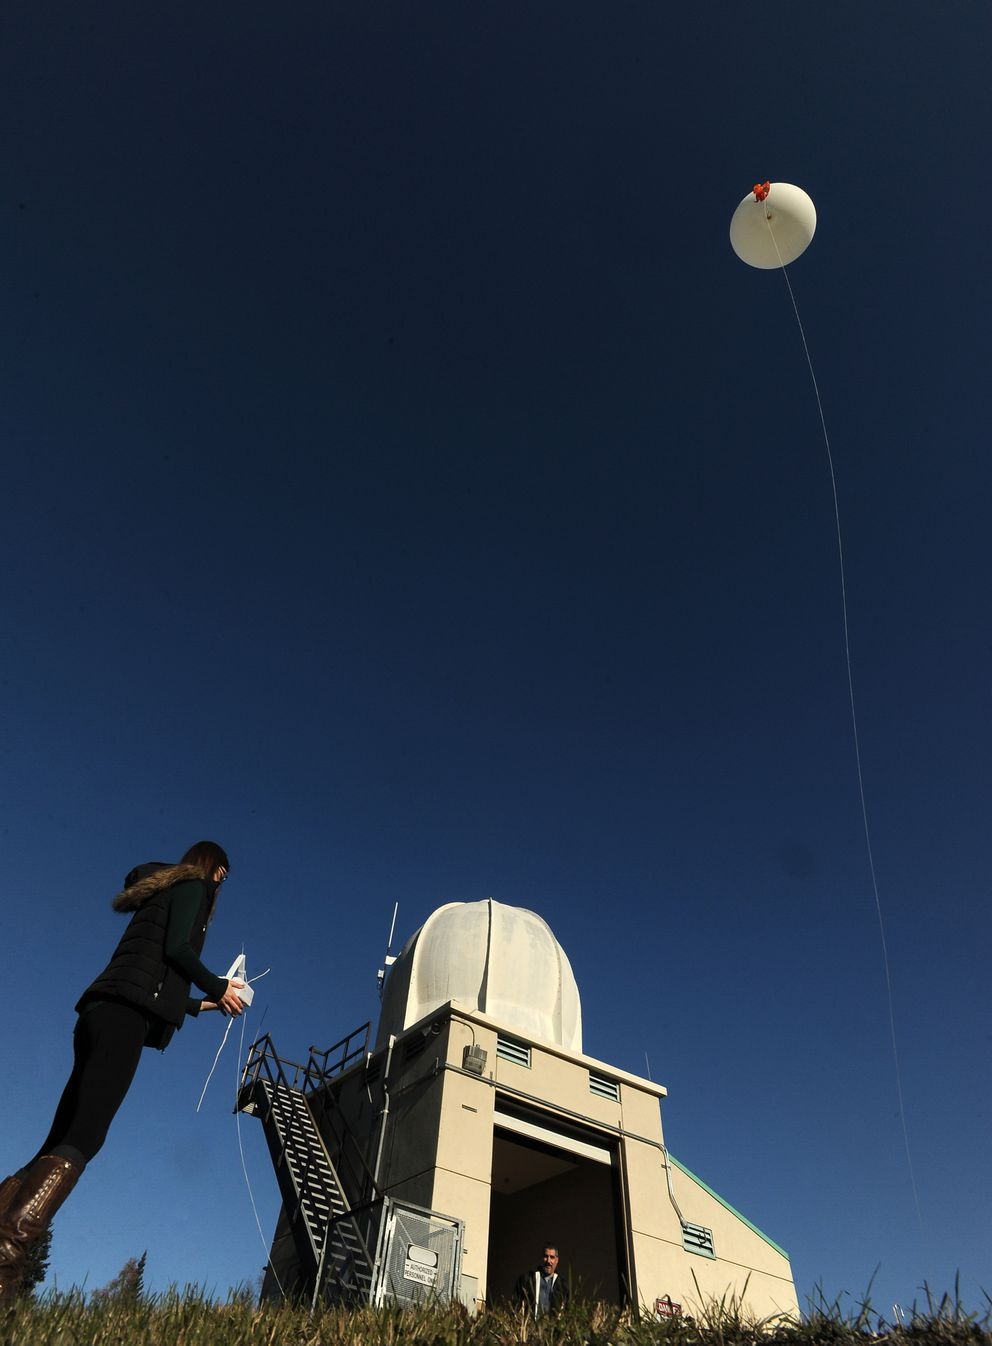 Rebecca Duel, meteorologist at the Anchorage Forecast Office of the National Weather Service, launches a weather balloon at the center in Anchorage, Alaska, on Friday, October 7, 2016. (Bob Hallinen / Alaska Dispatch News)